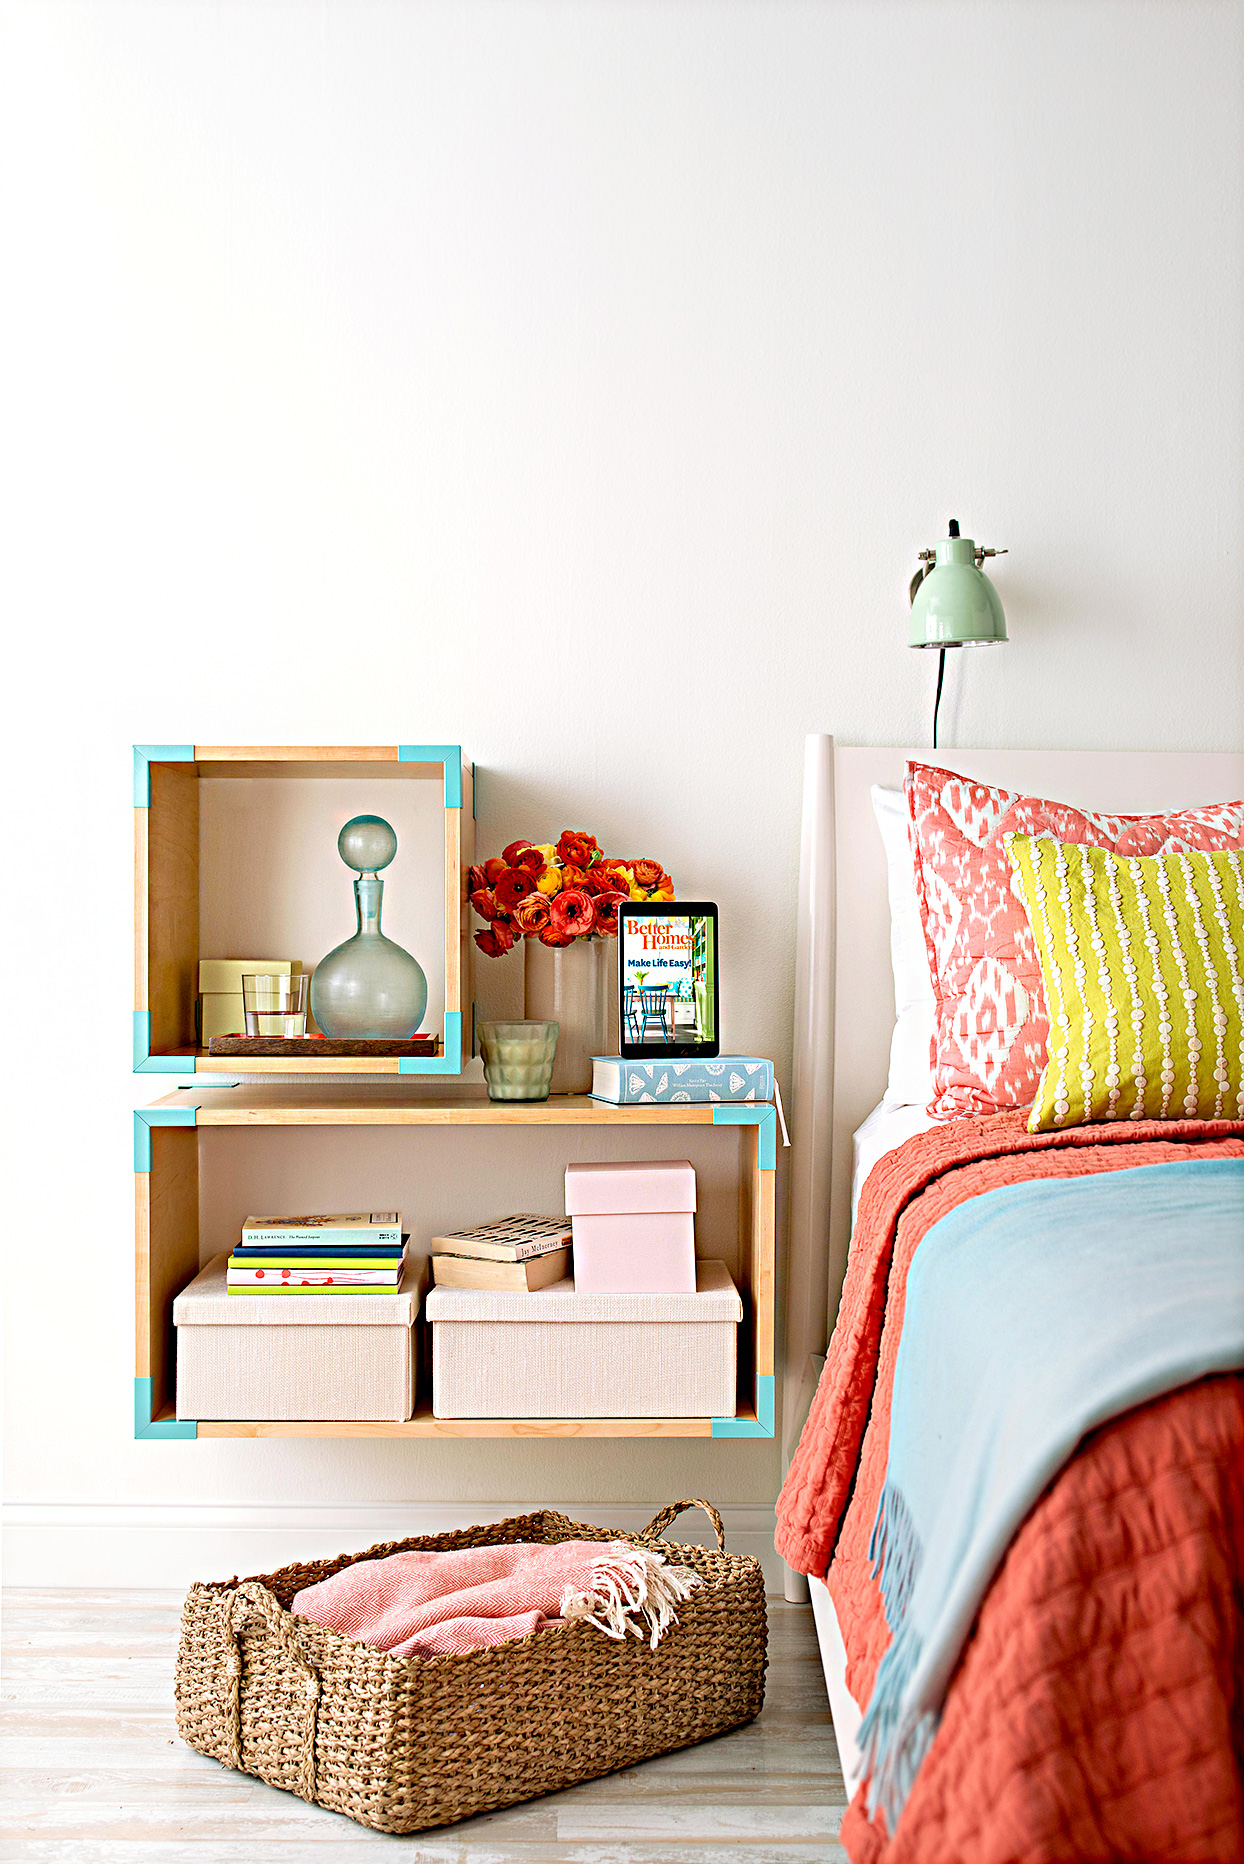 19 Genius Storage Solutions For Small Bedrooms Better Homes Gardens